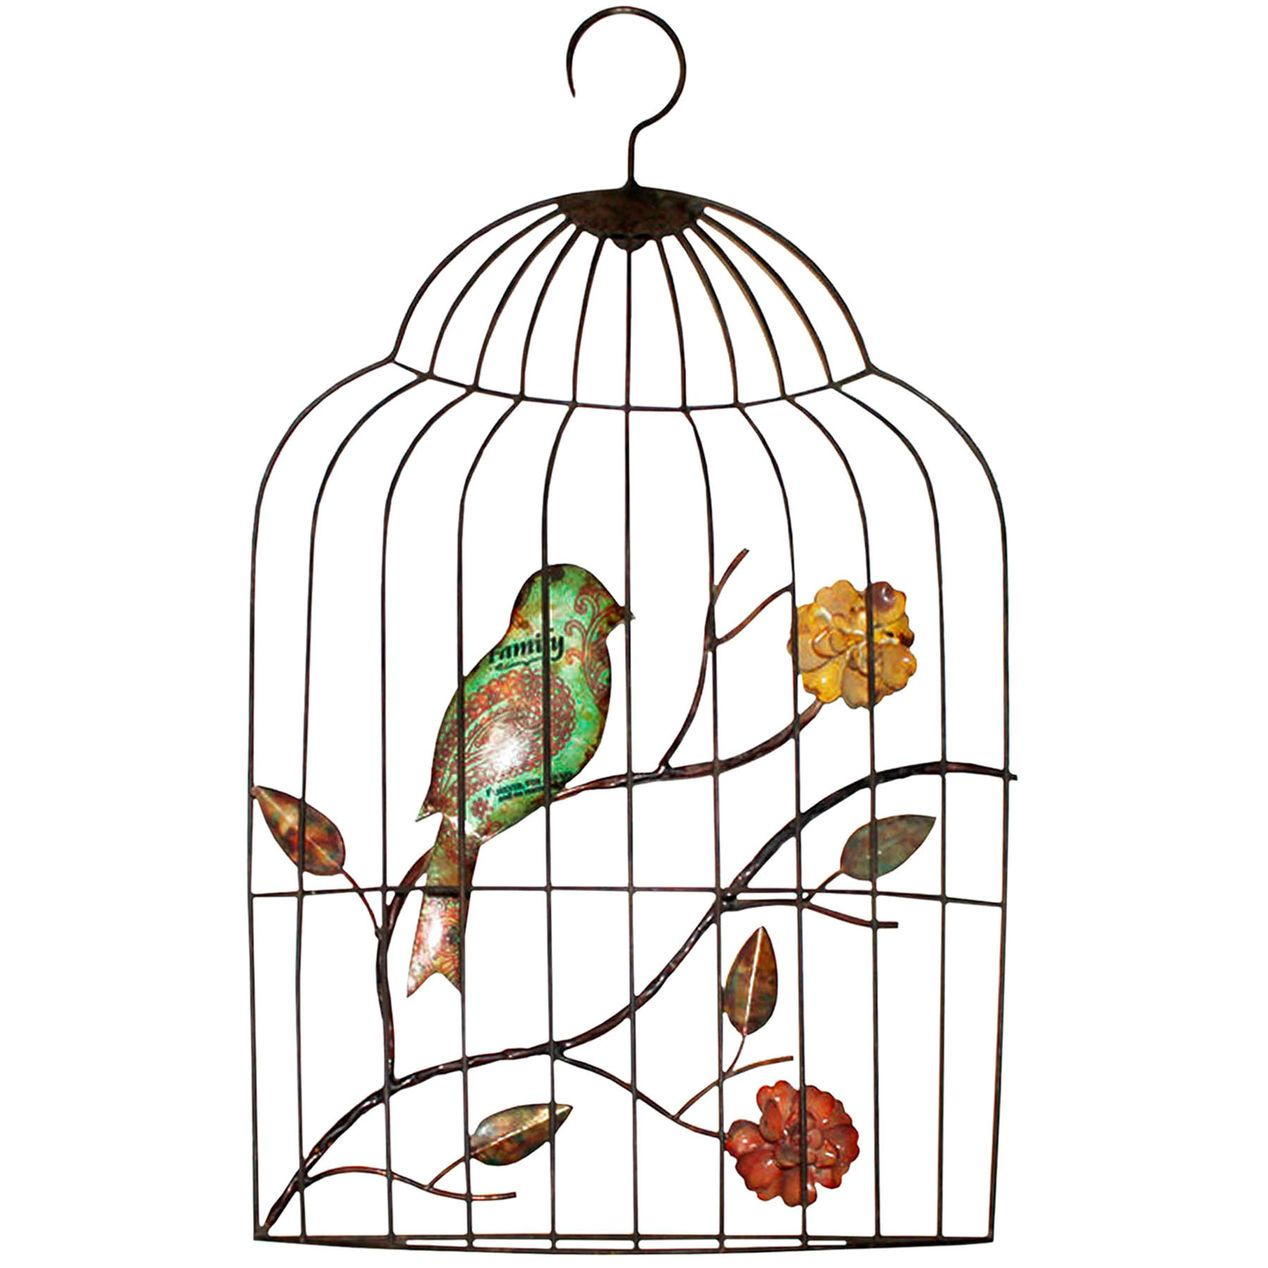 Bird In A Cage Drawing